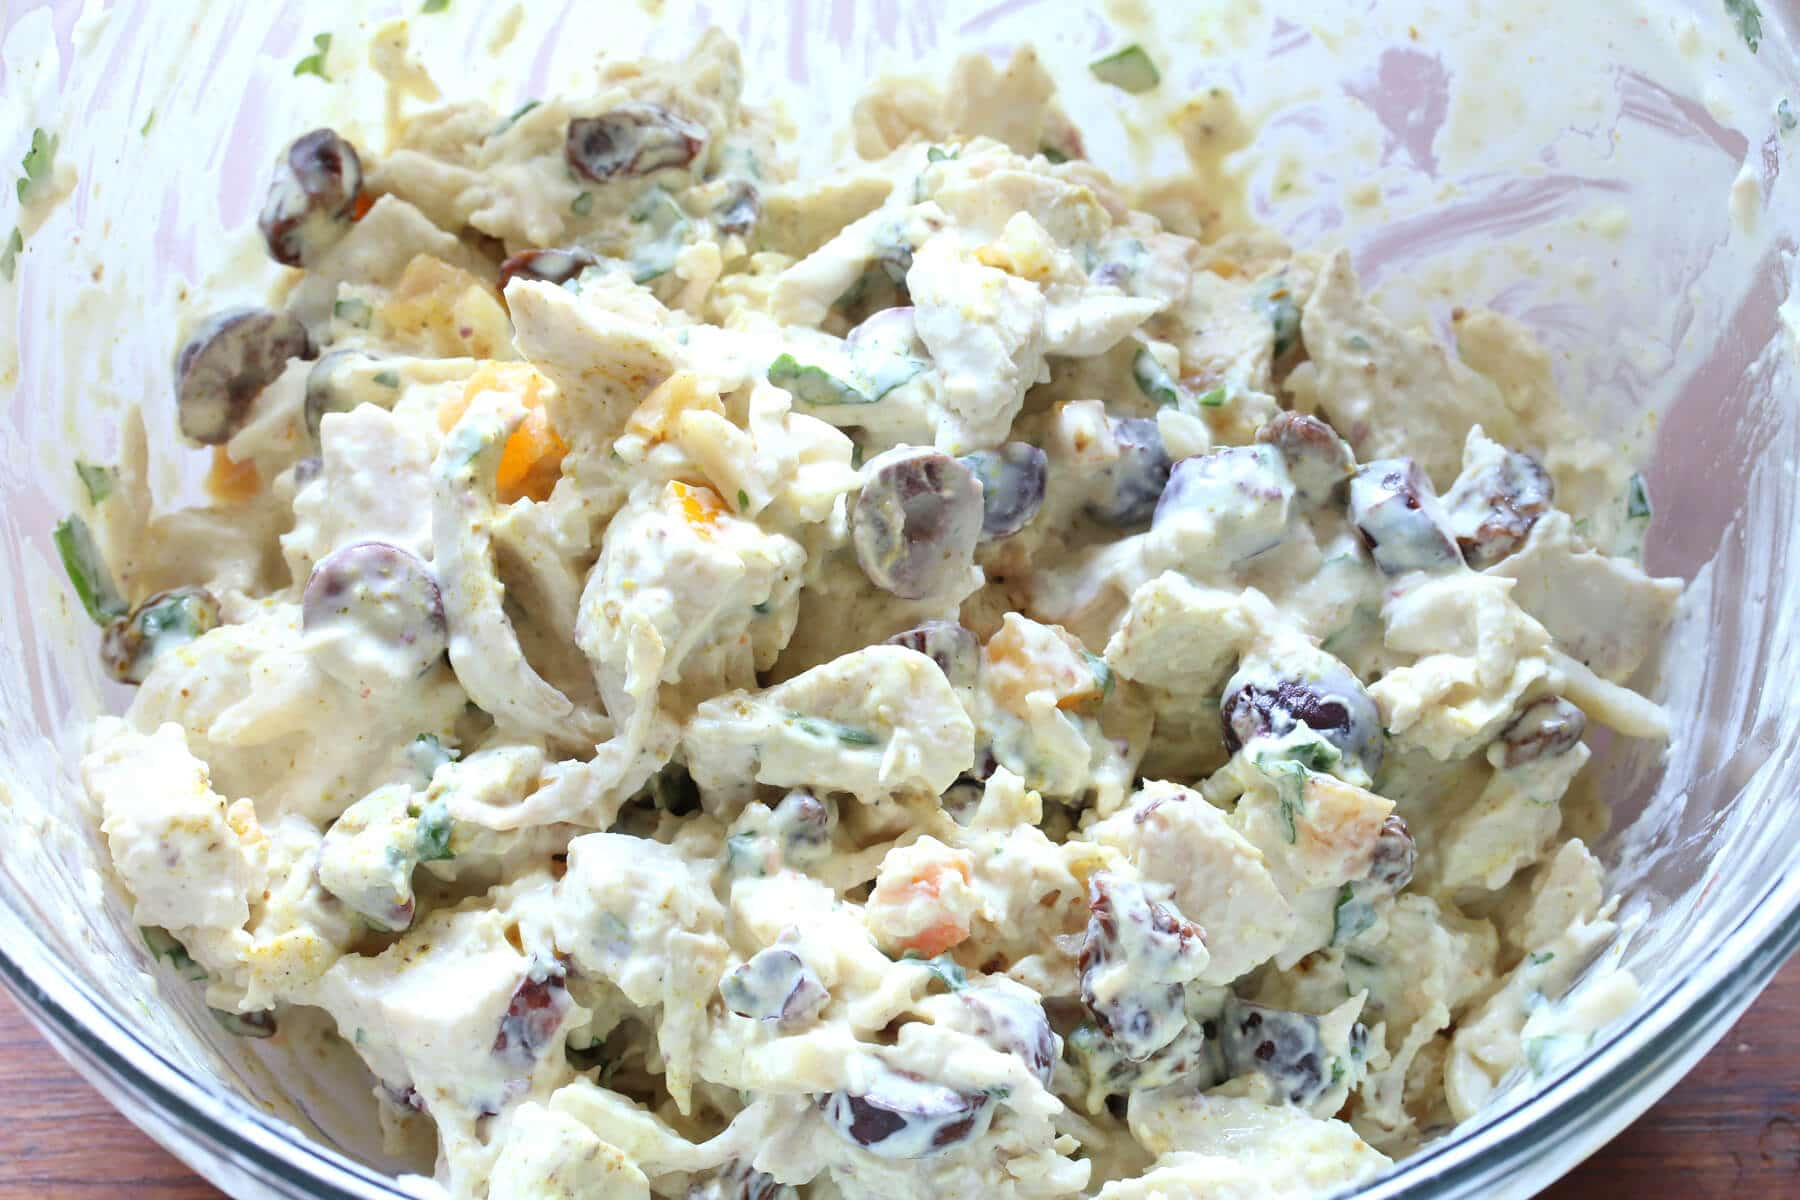 moroccan chicken salad olives apricots nuts almonds cilantro mayonnaise curry preserved lemons recipe